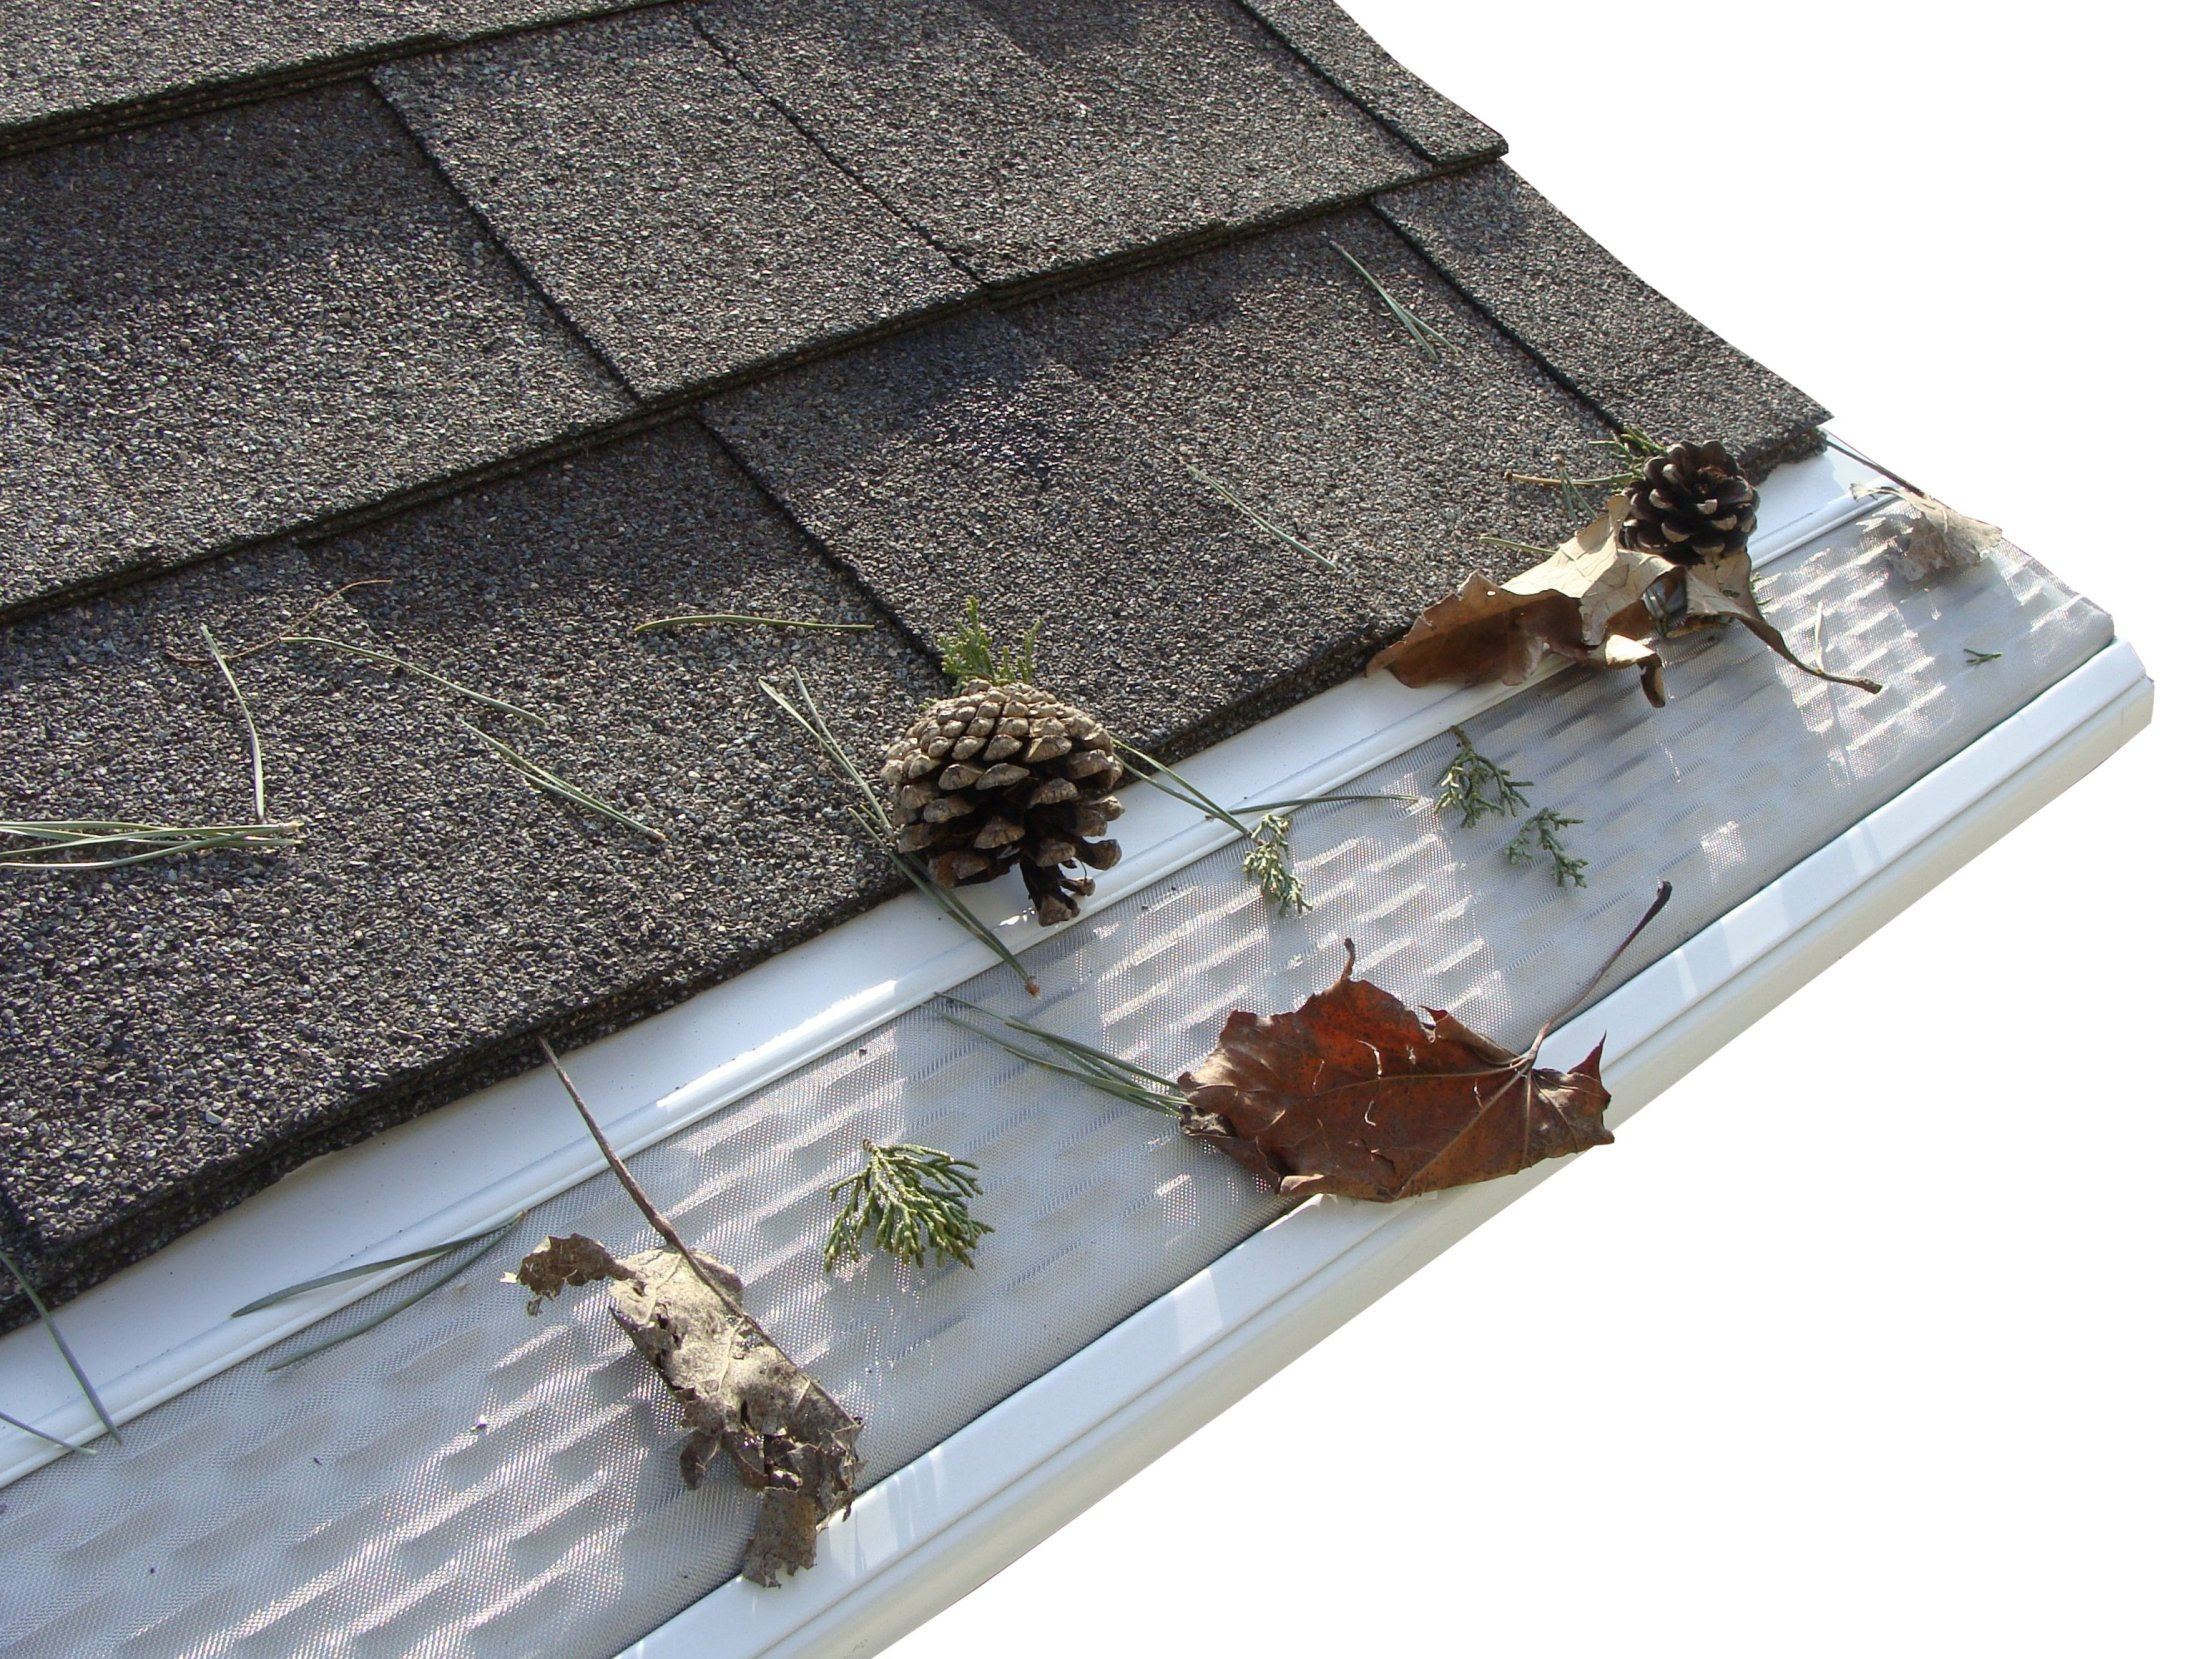 how to cut plastic rain gutters